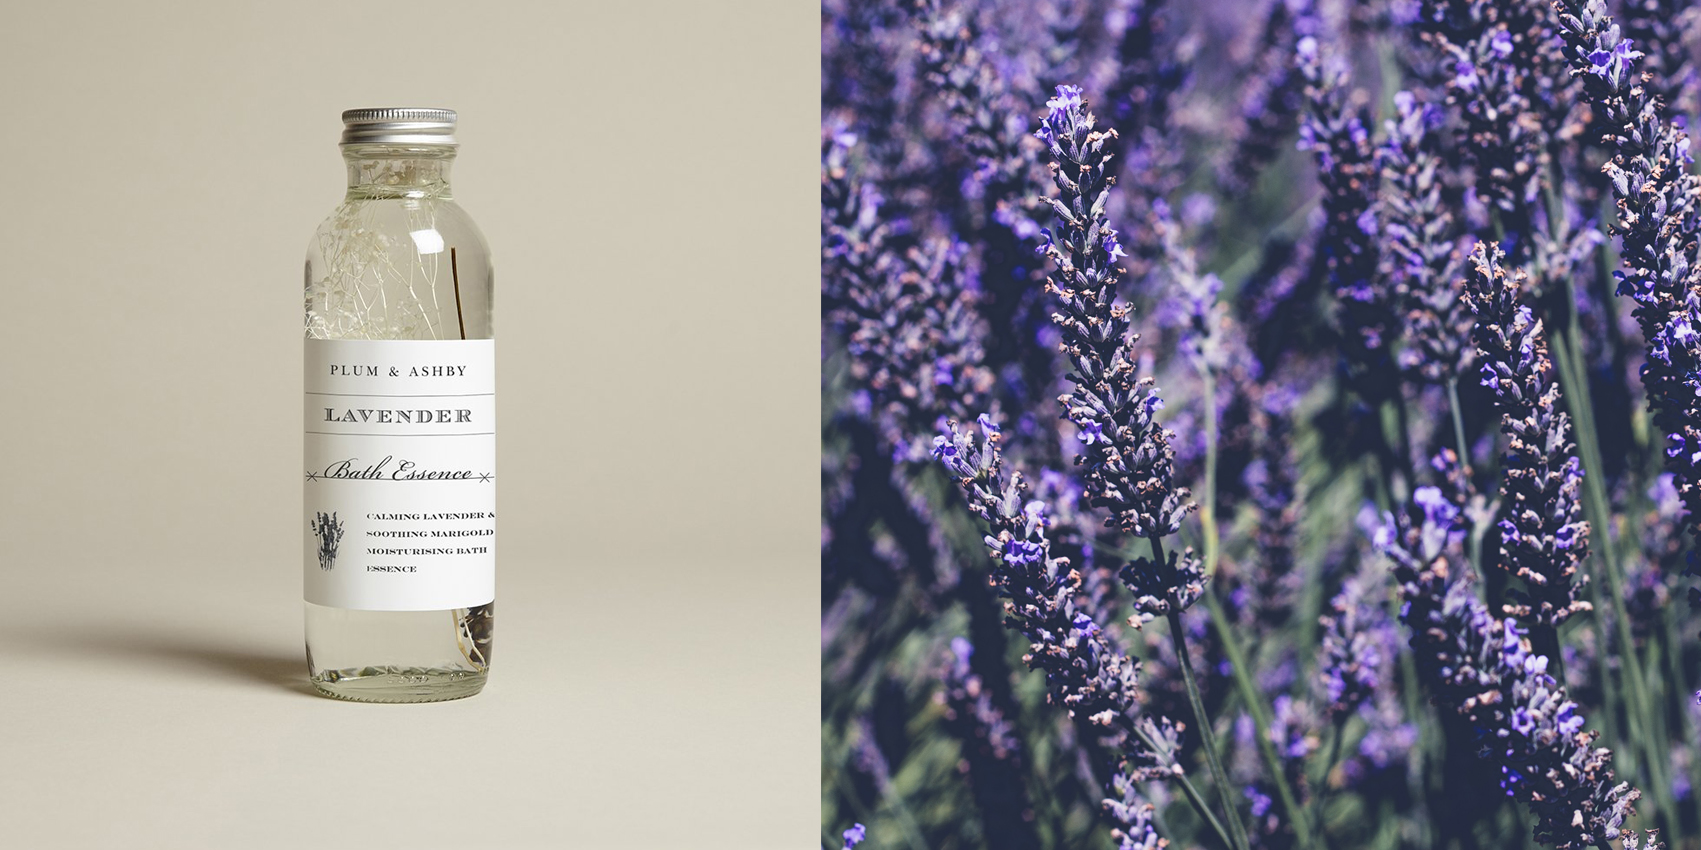 Lavender Bath Essence from Plum & Ashby. Available in The Spa Day gift box.